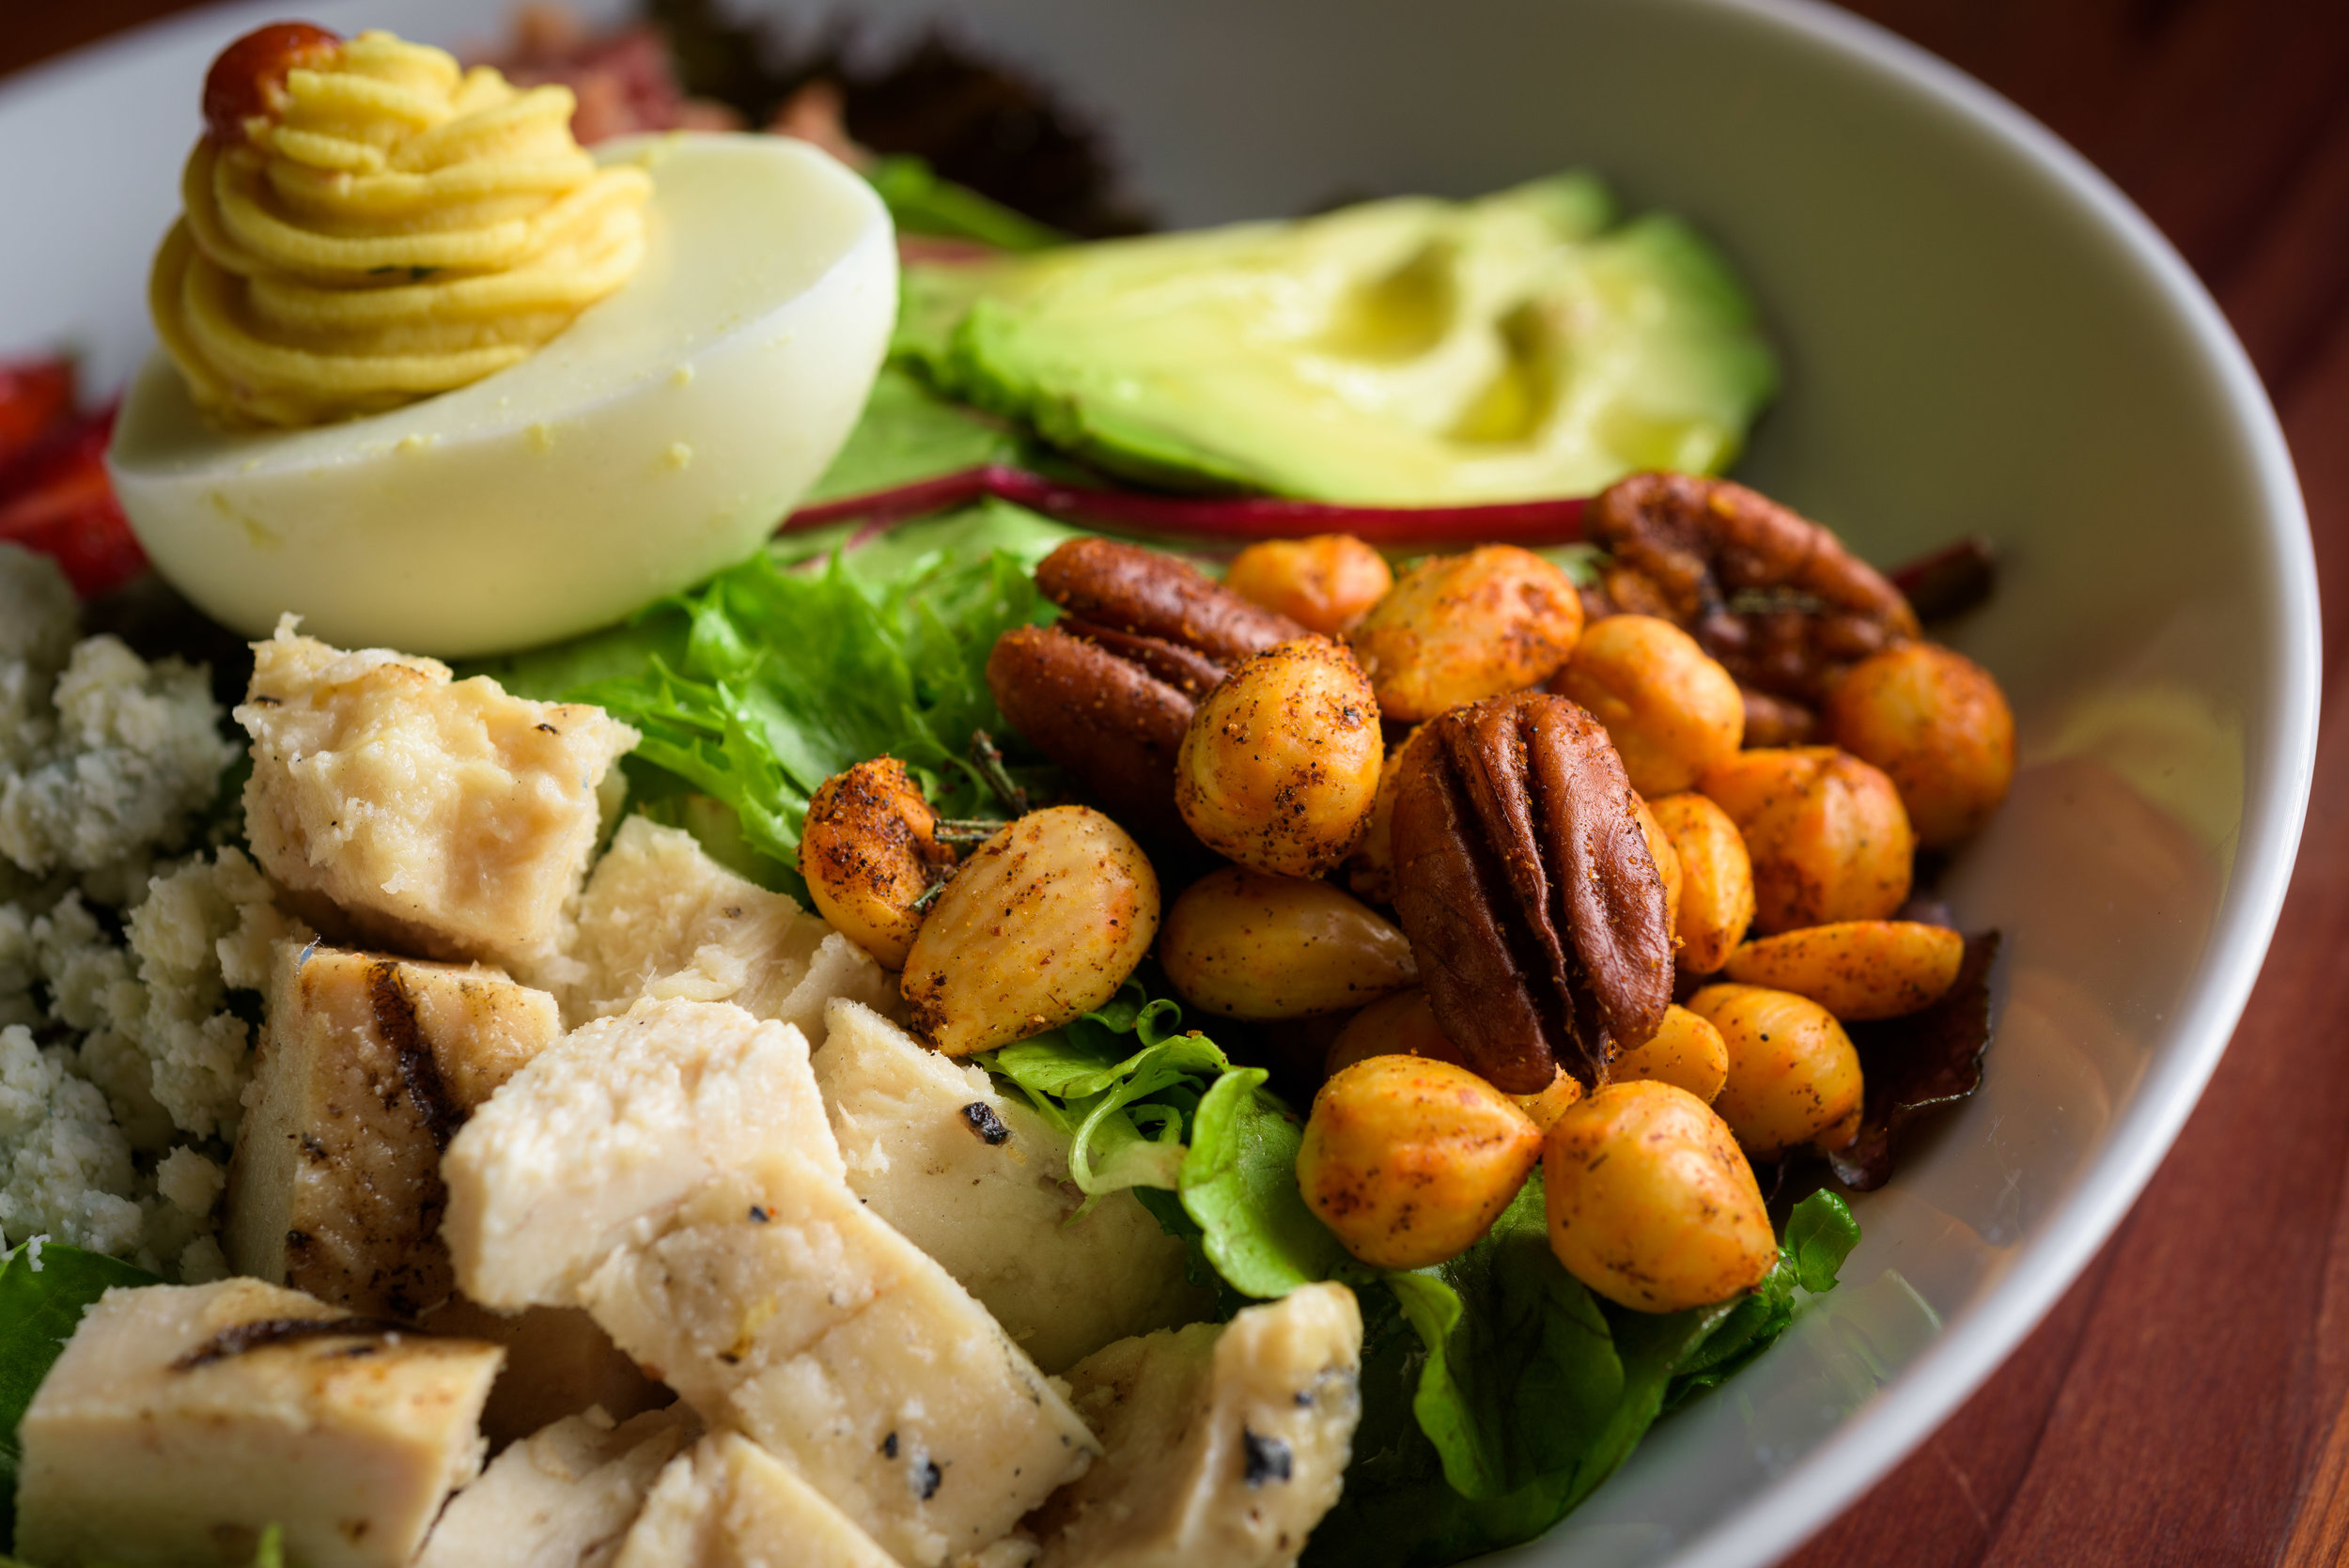 closeup of cobb salad - Cupertino food photography - RootStock Wine Bar - photos by Bay Area commercial photographer Chris Schmauch